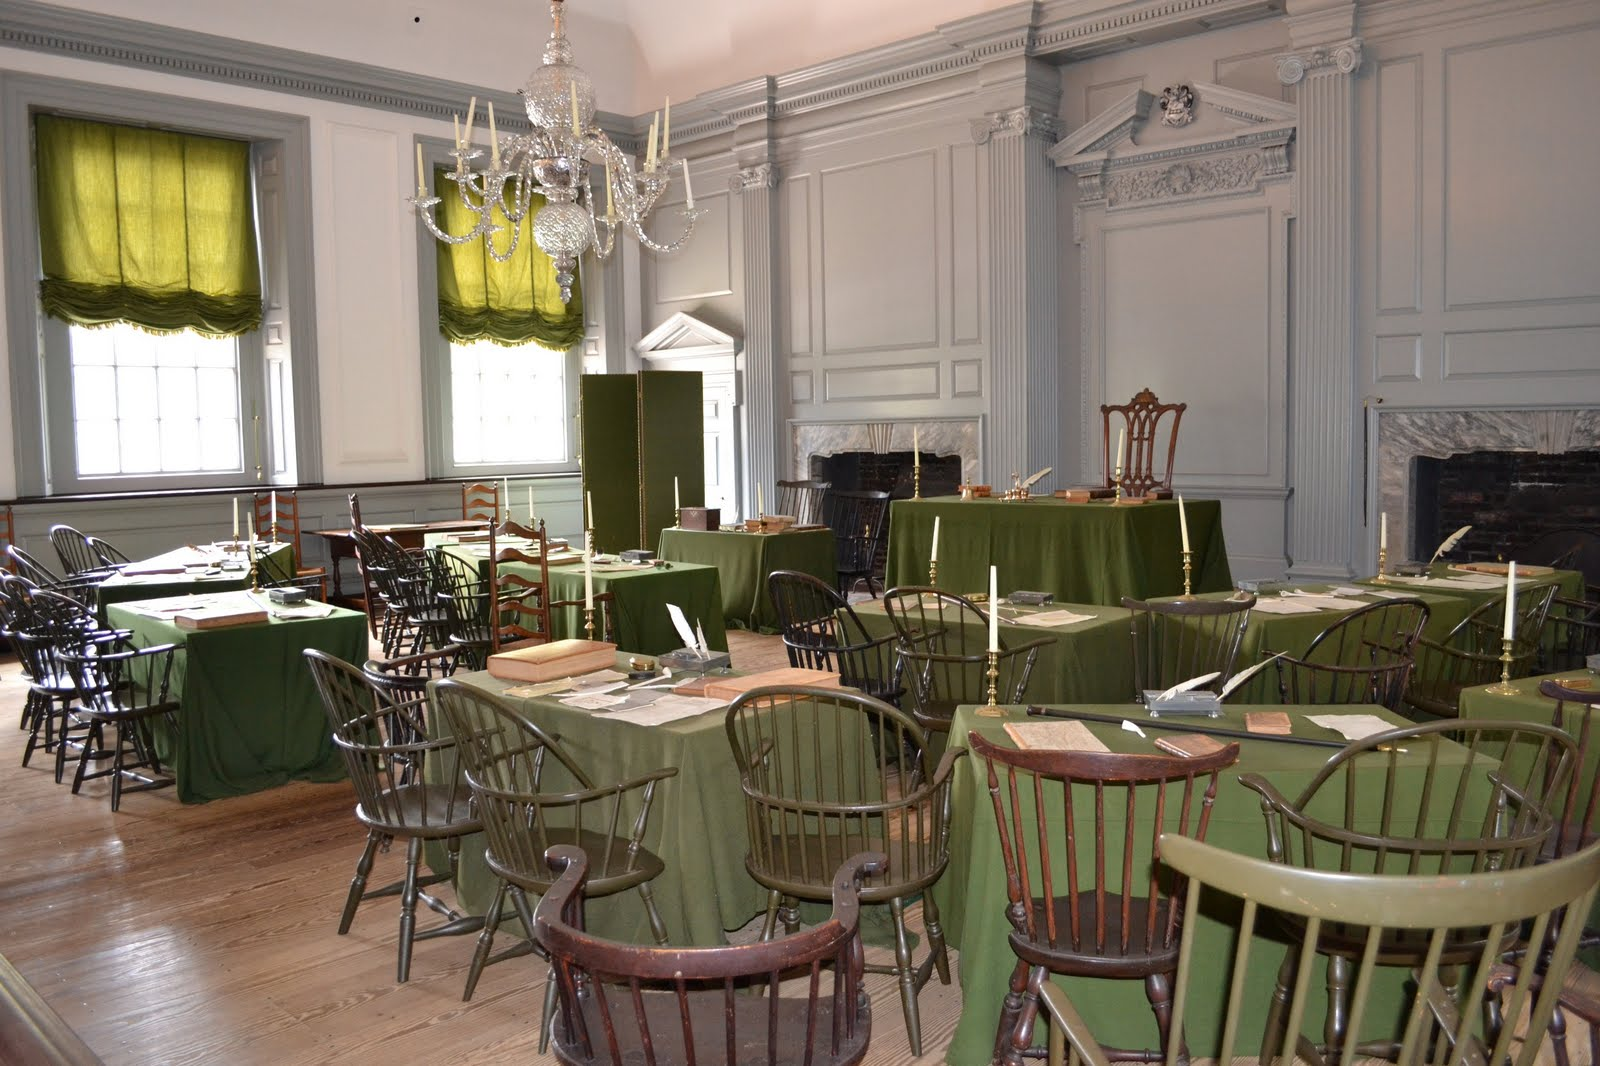 Rooms Inside Independence Hall